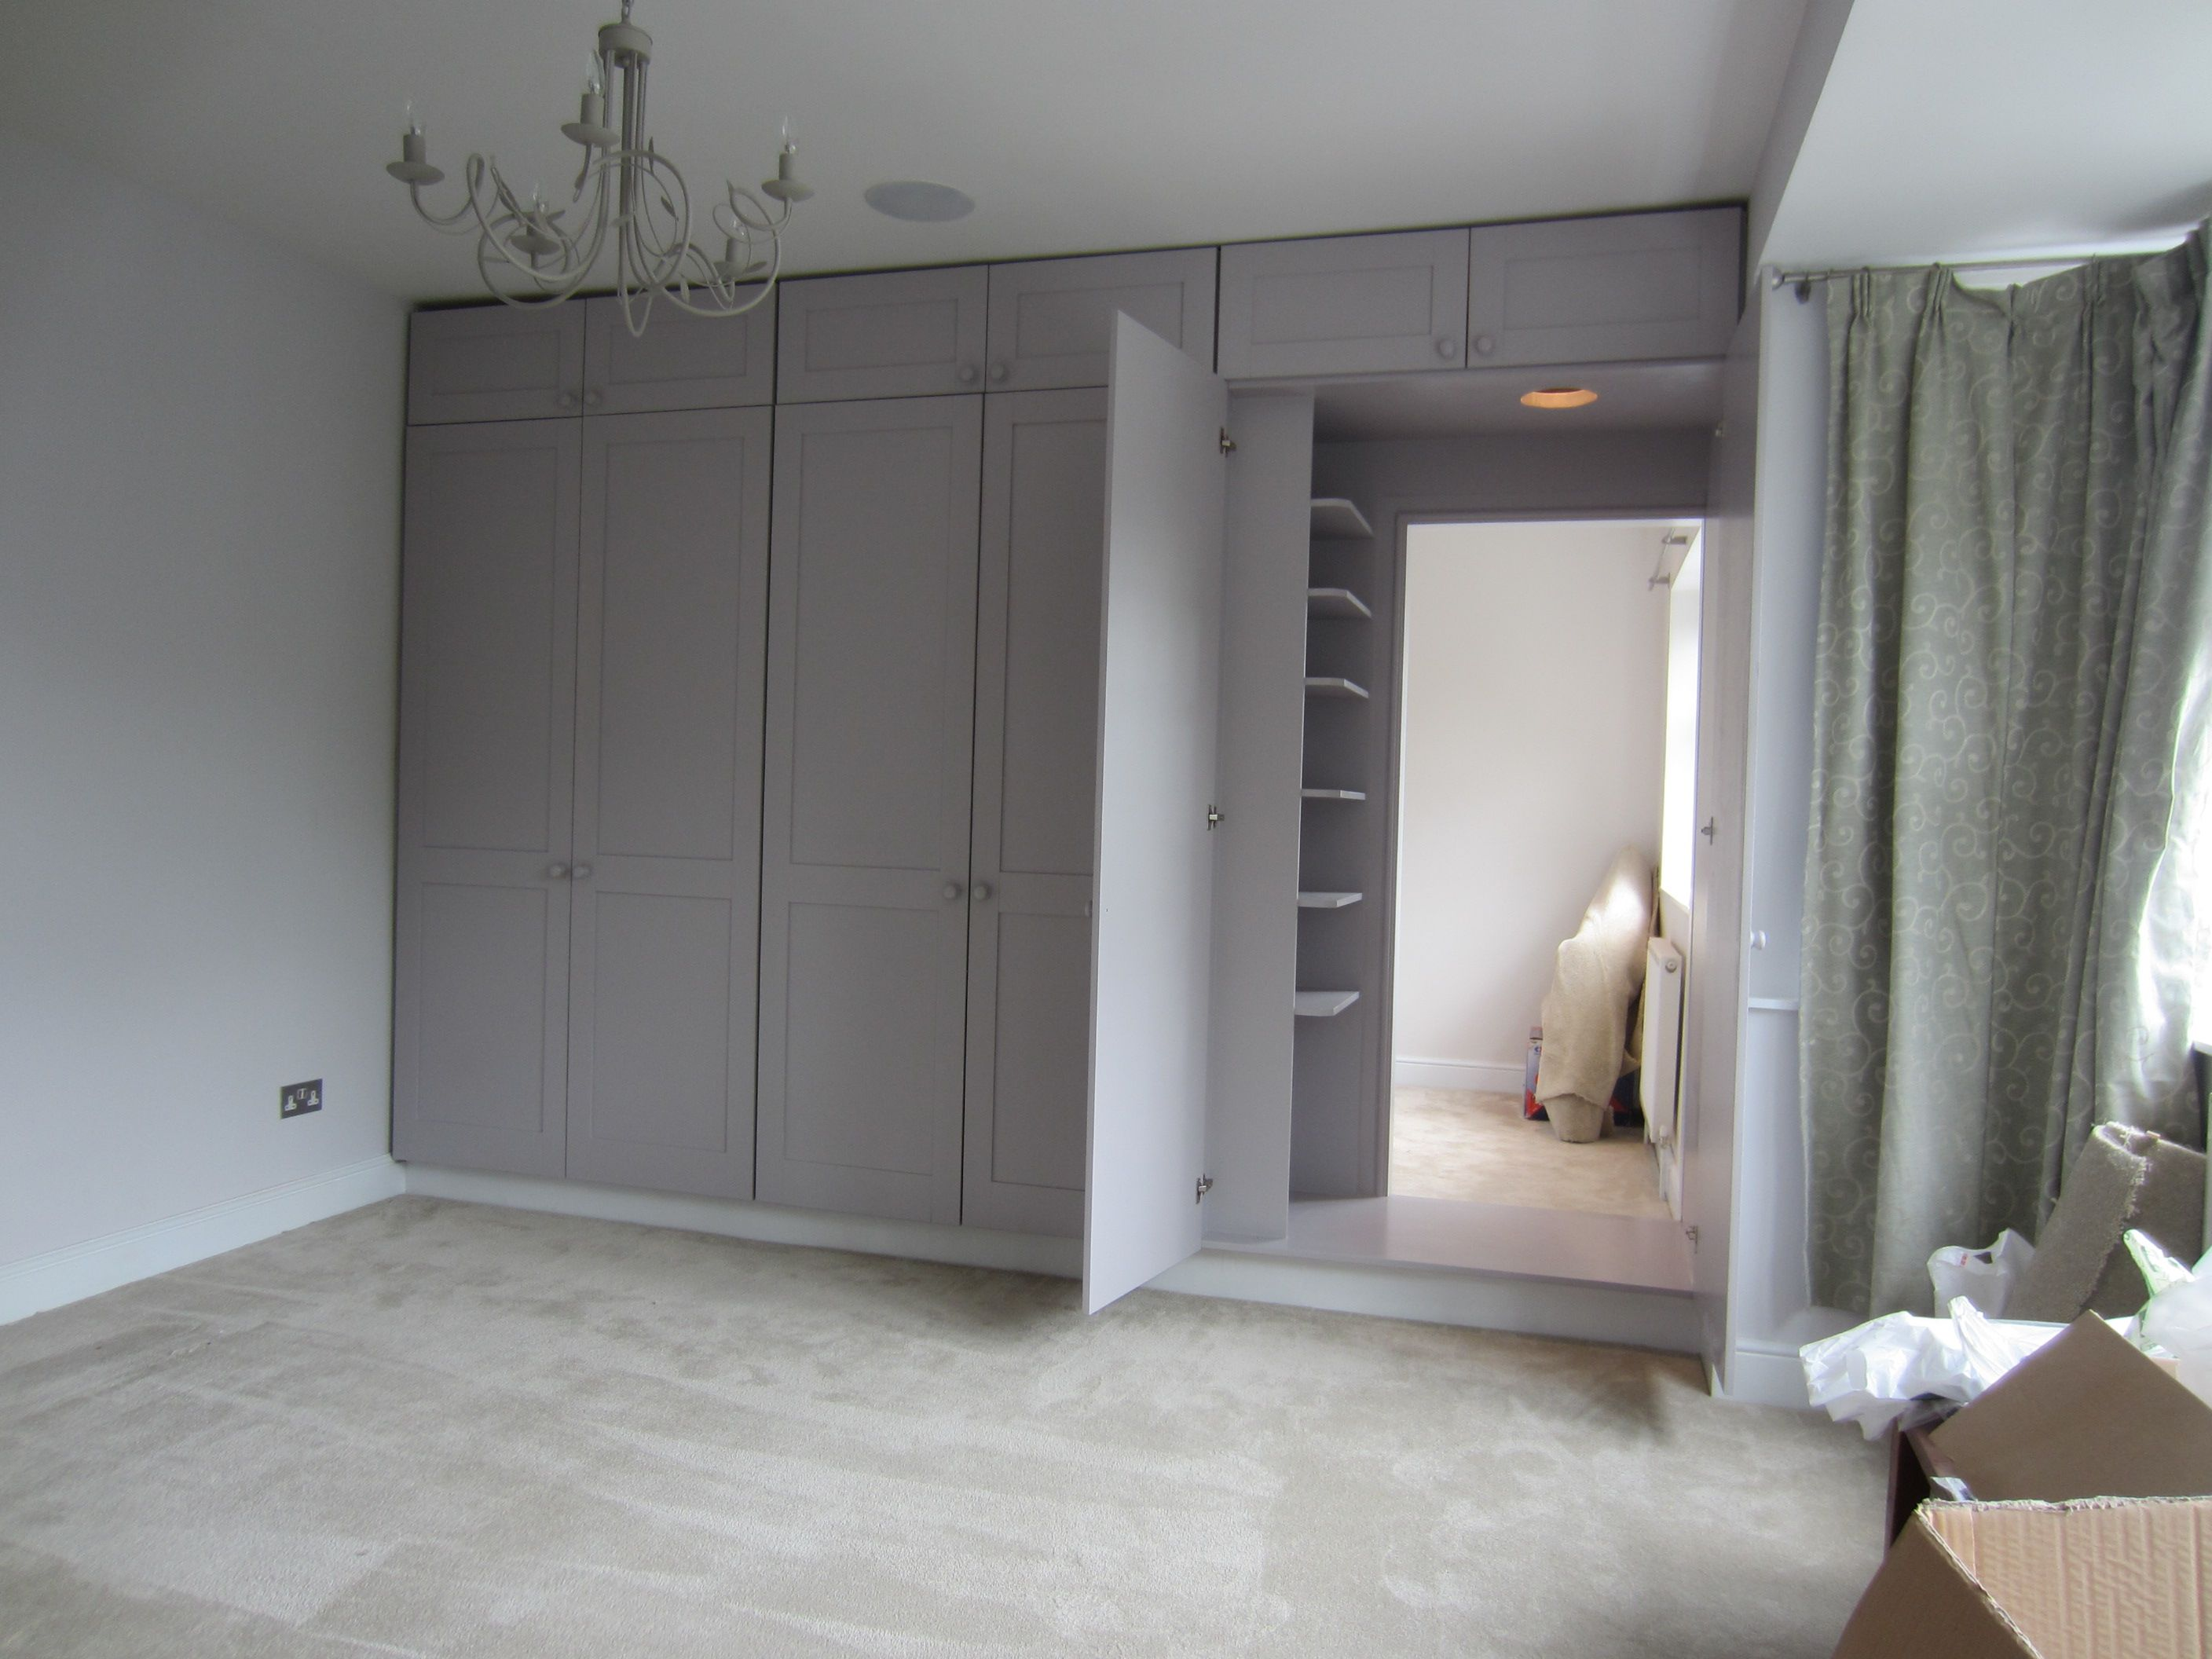 Wardrobe doors reveal hidden dressing room containing additional wardrobe units image 2 of 3 Master bedroom ensuite and wardrobe